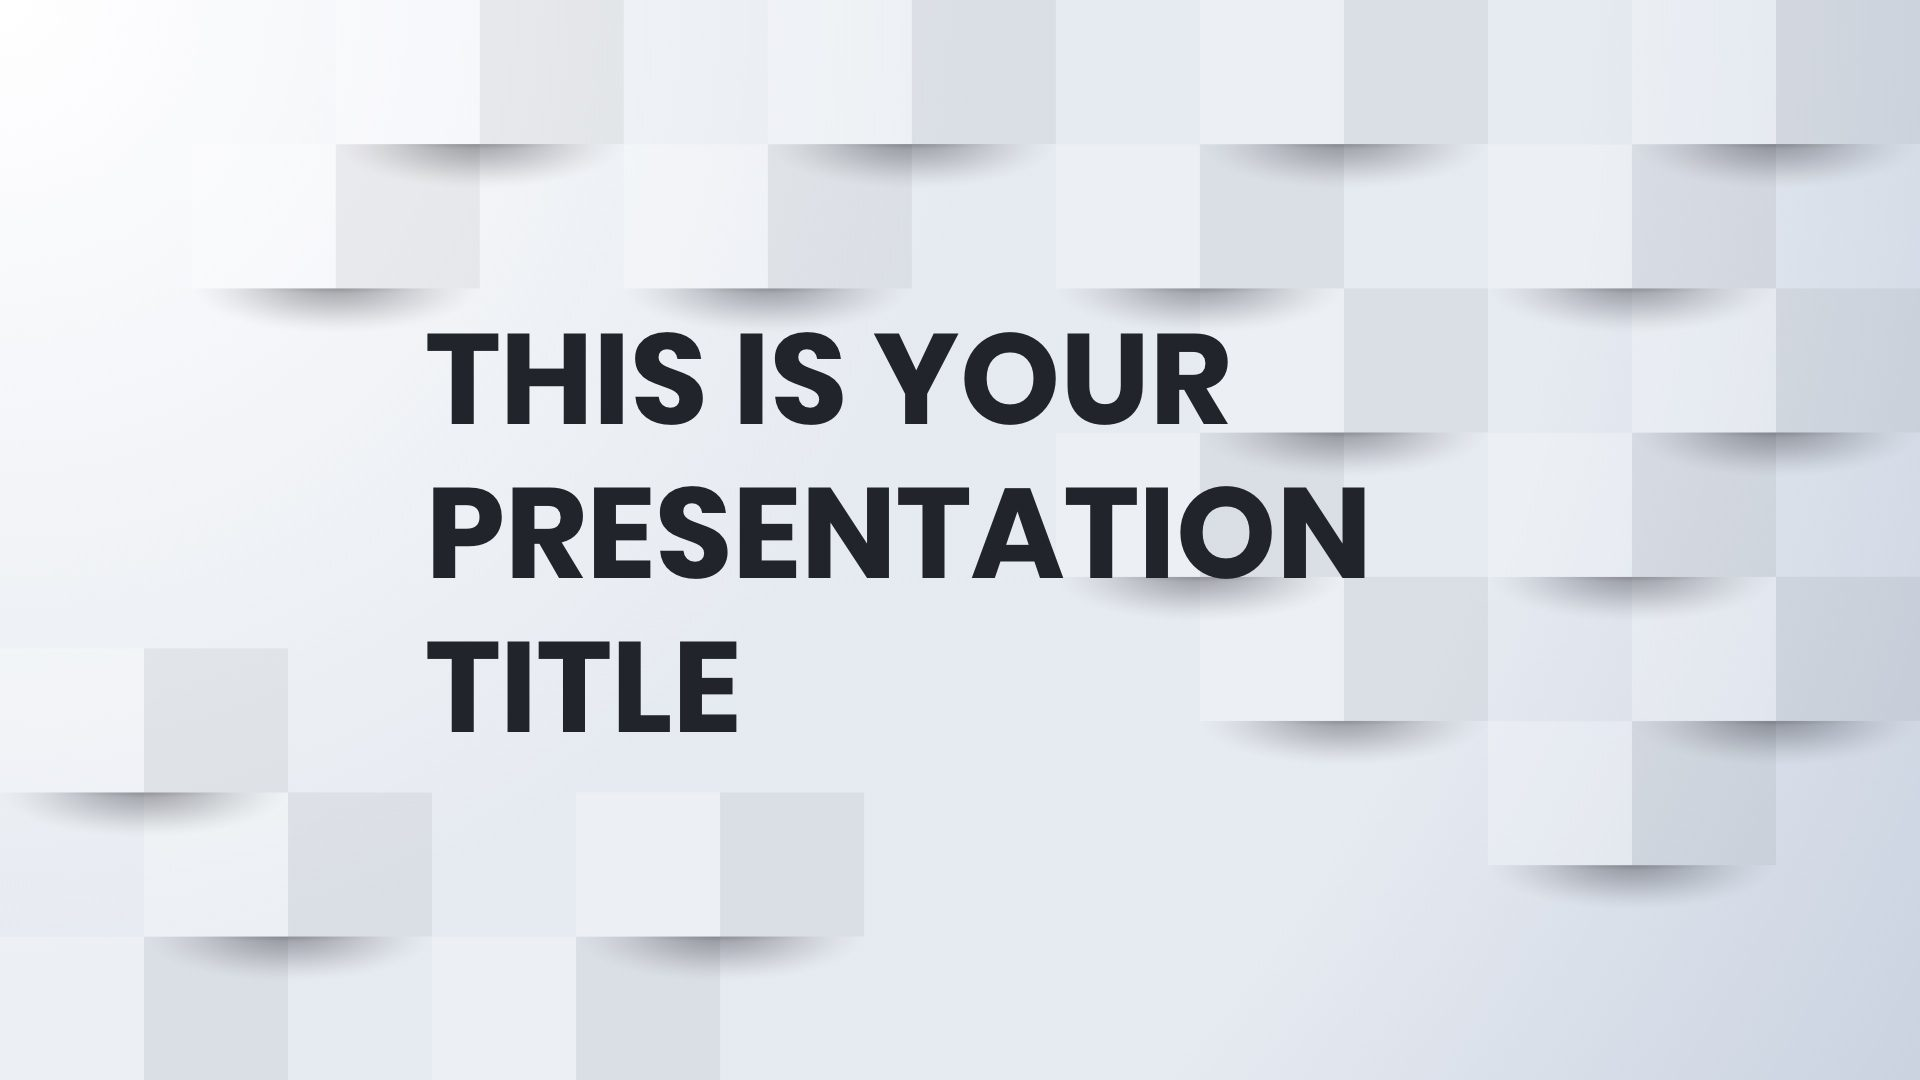 Free Powerpoint template or Google Slides theme with white business background